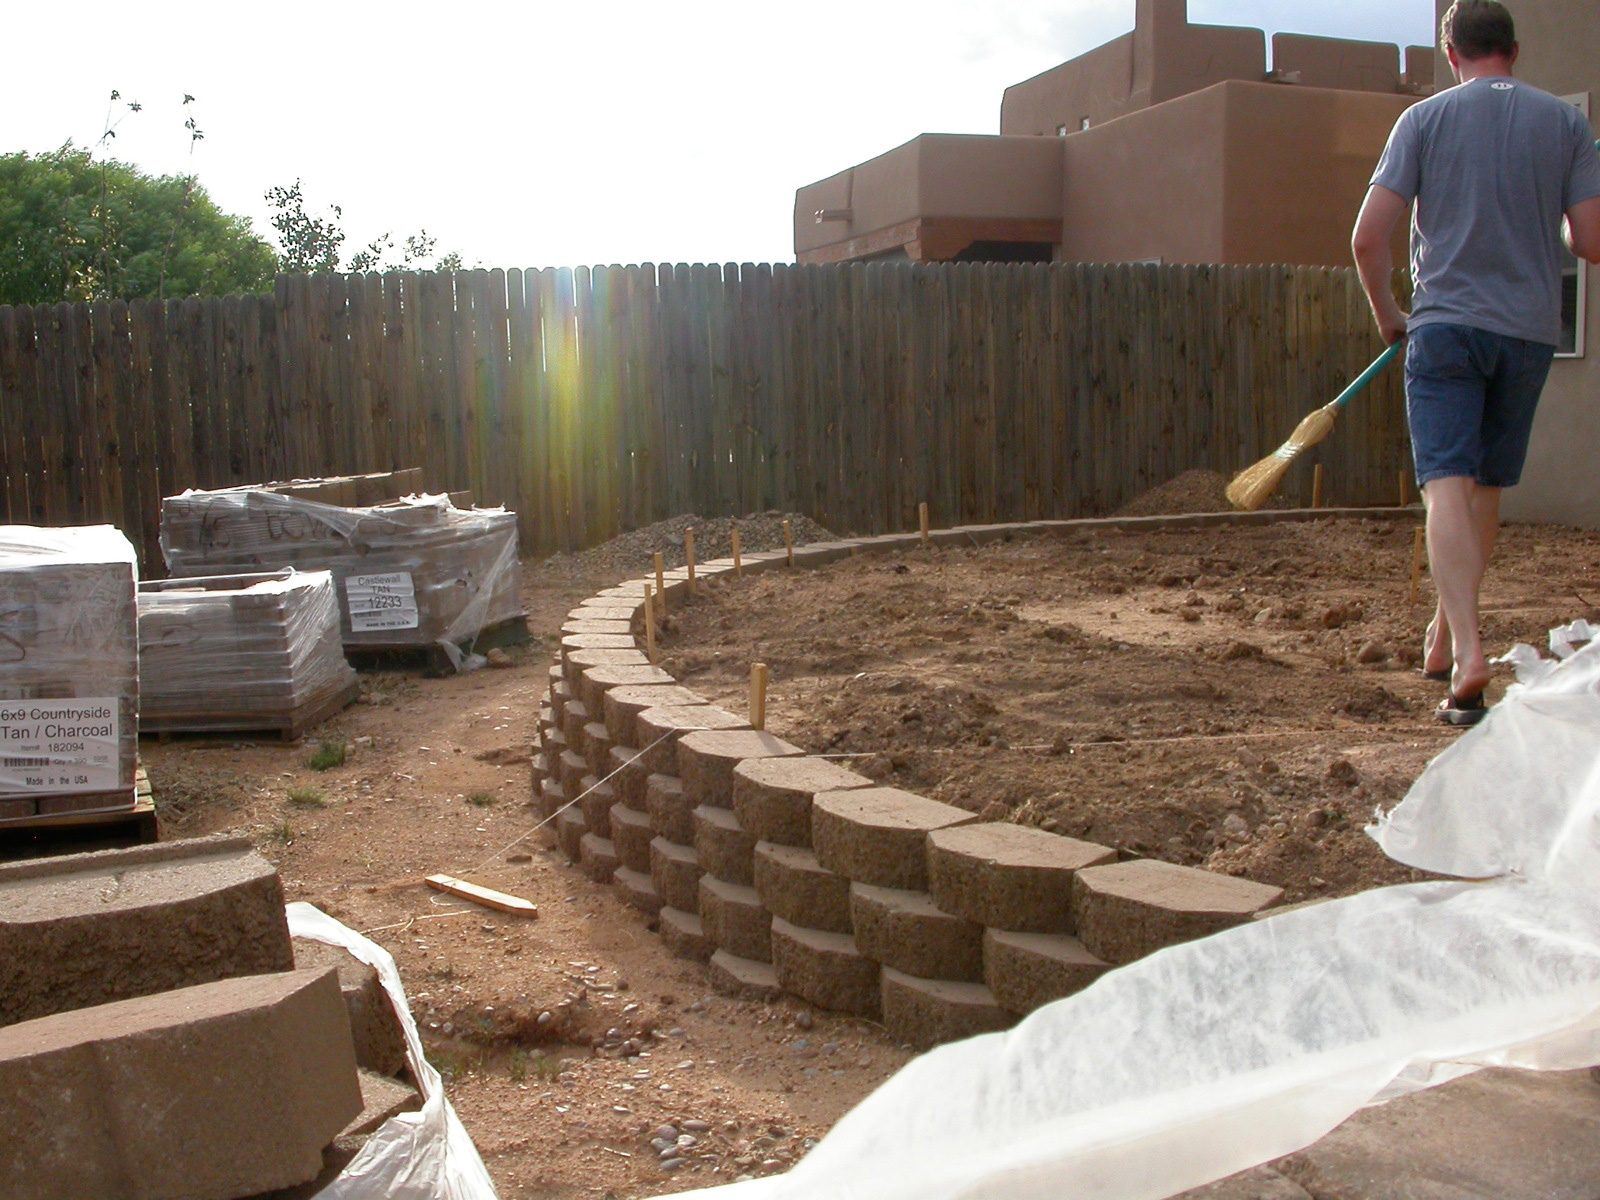 Backyard Retaining Wall Designs. Backyard Retaining Wall Designs Houselogic